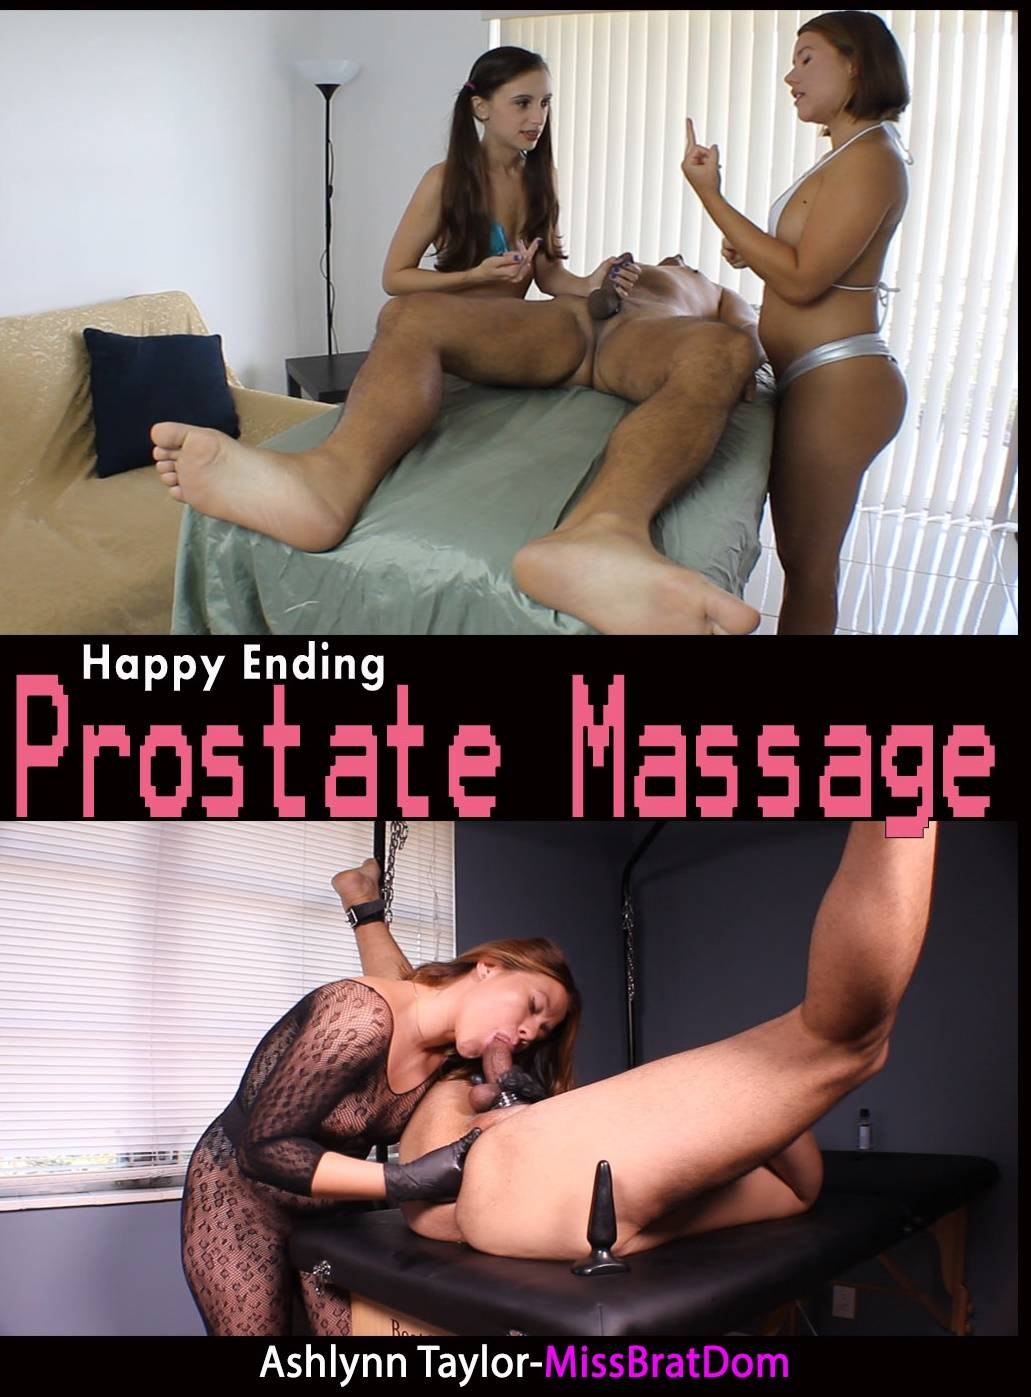 Happy Ending Prostate Massages